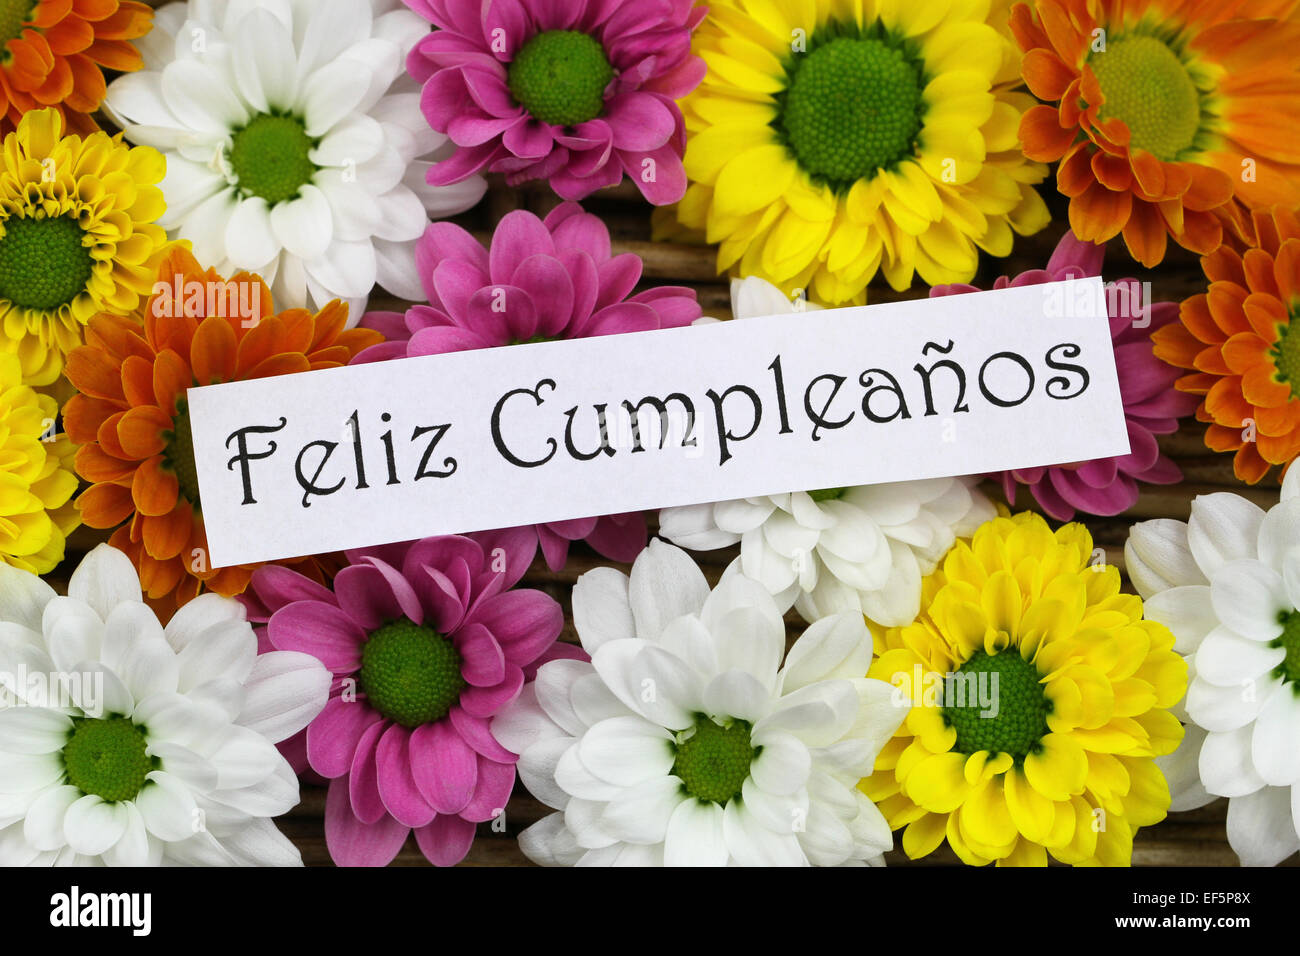 Feliz Cumpleanos Which Means Happy Birthday In Spanish Card With